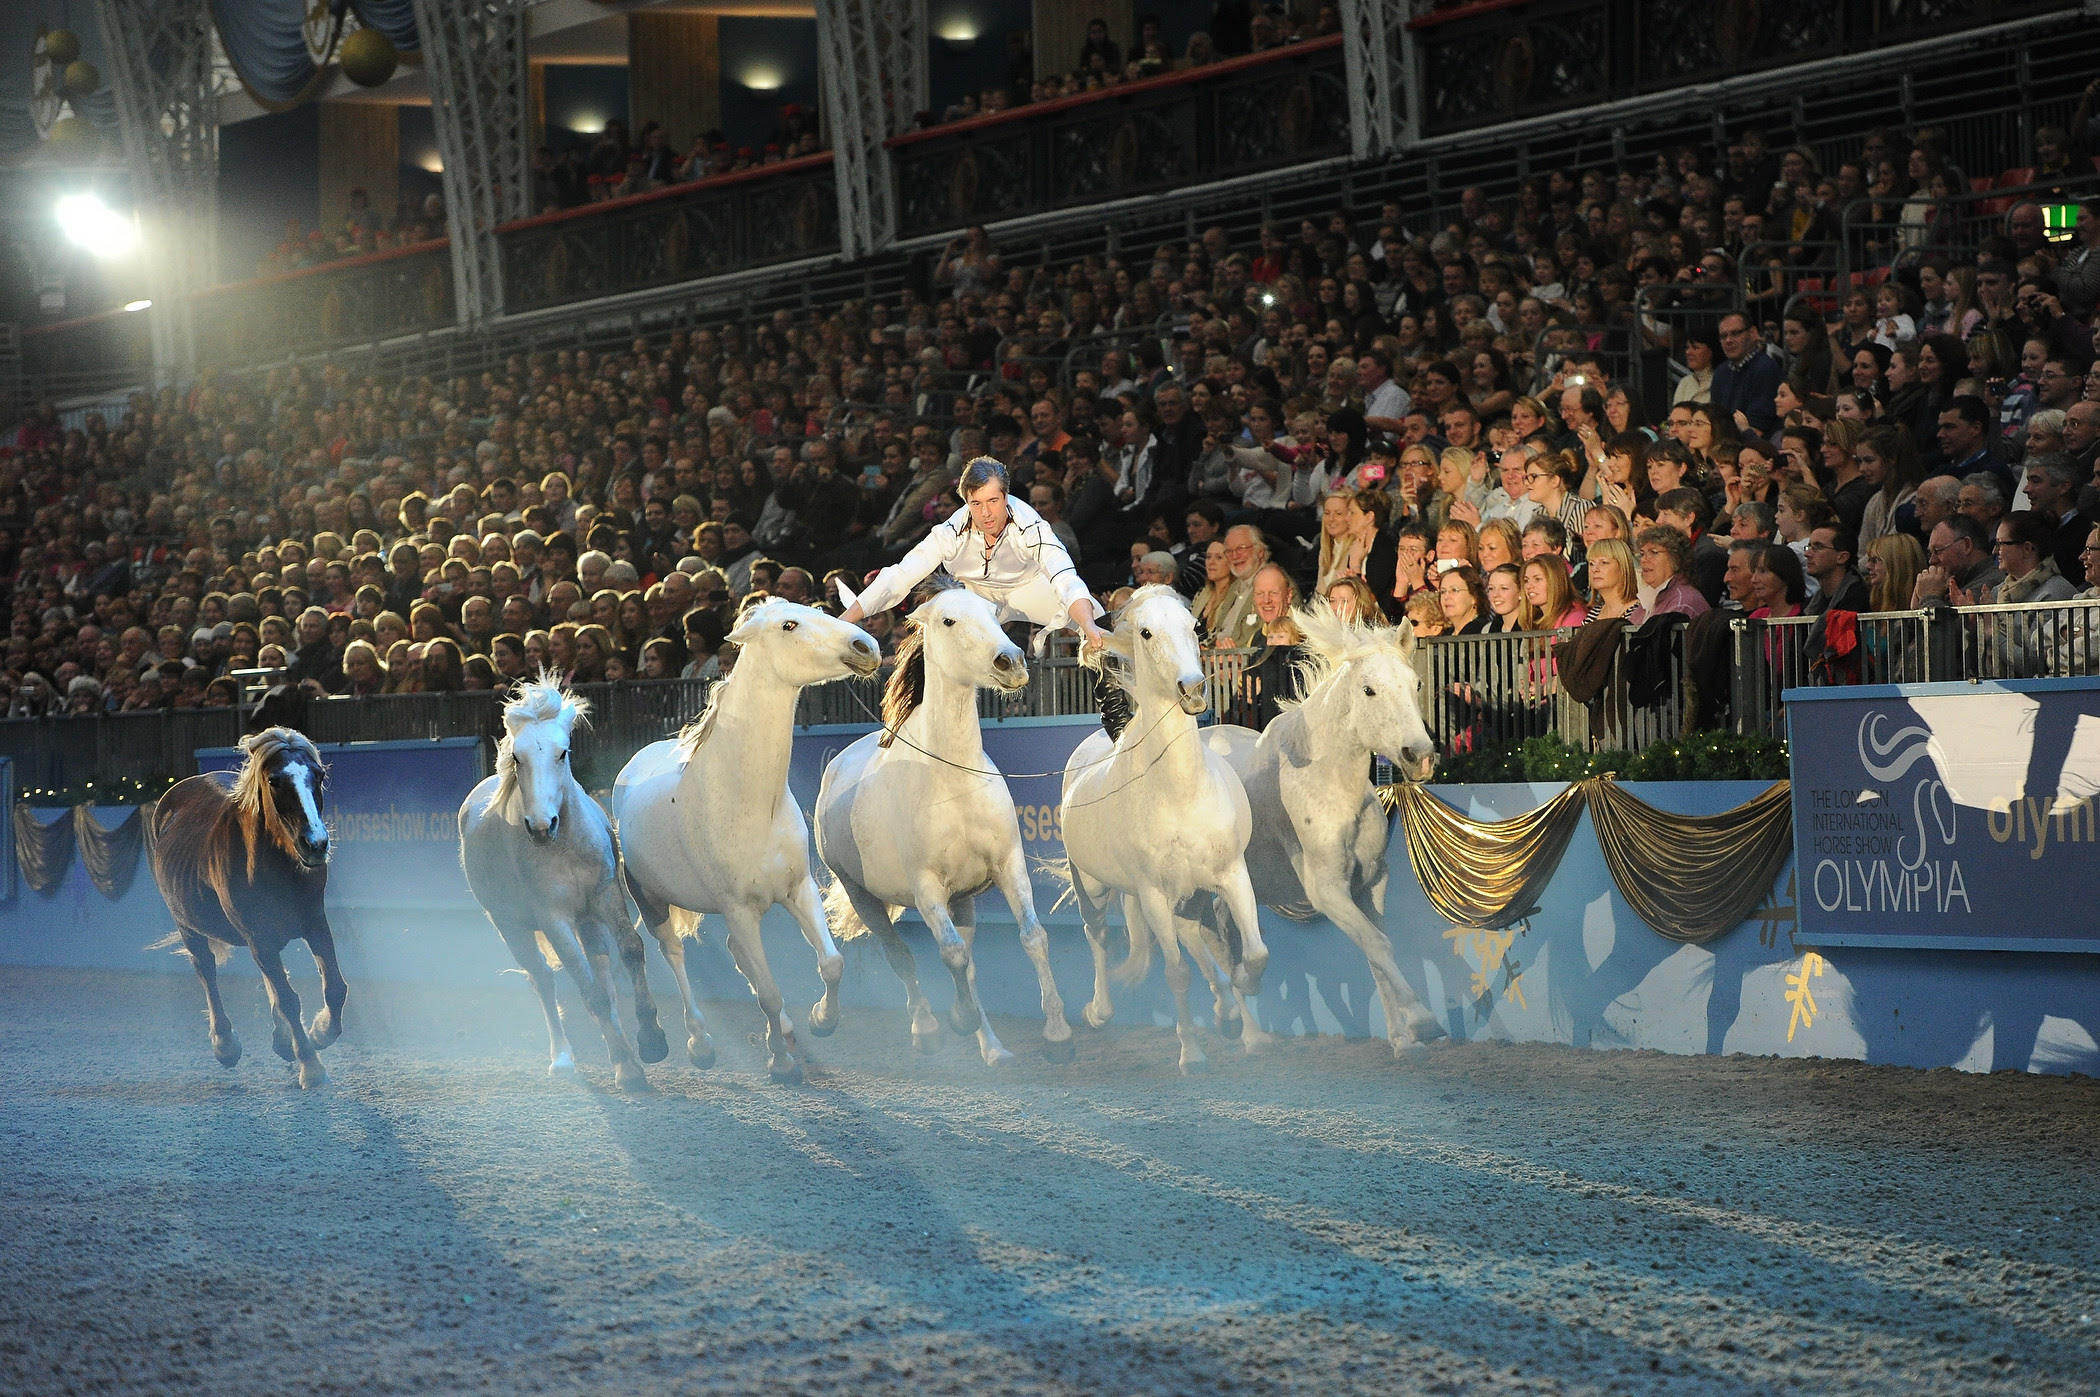 Horse Times Egypt: Equestrian Magazine :News :WORLD FAMOUS HORSE WHISPERER TO HEADLINE OLYMPIA, THE LONDON INTERNATIONAL HORSE SHOW 2015